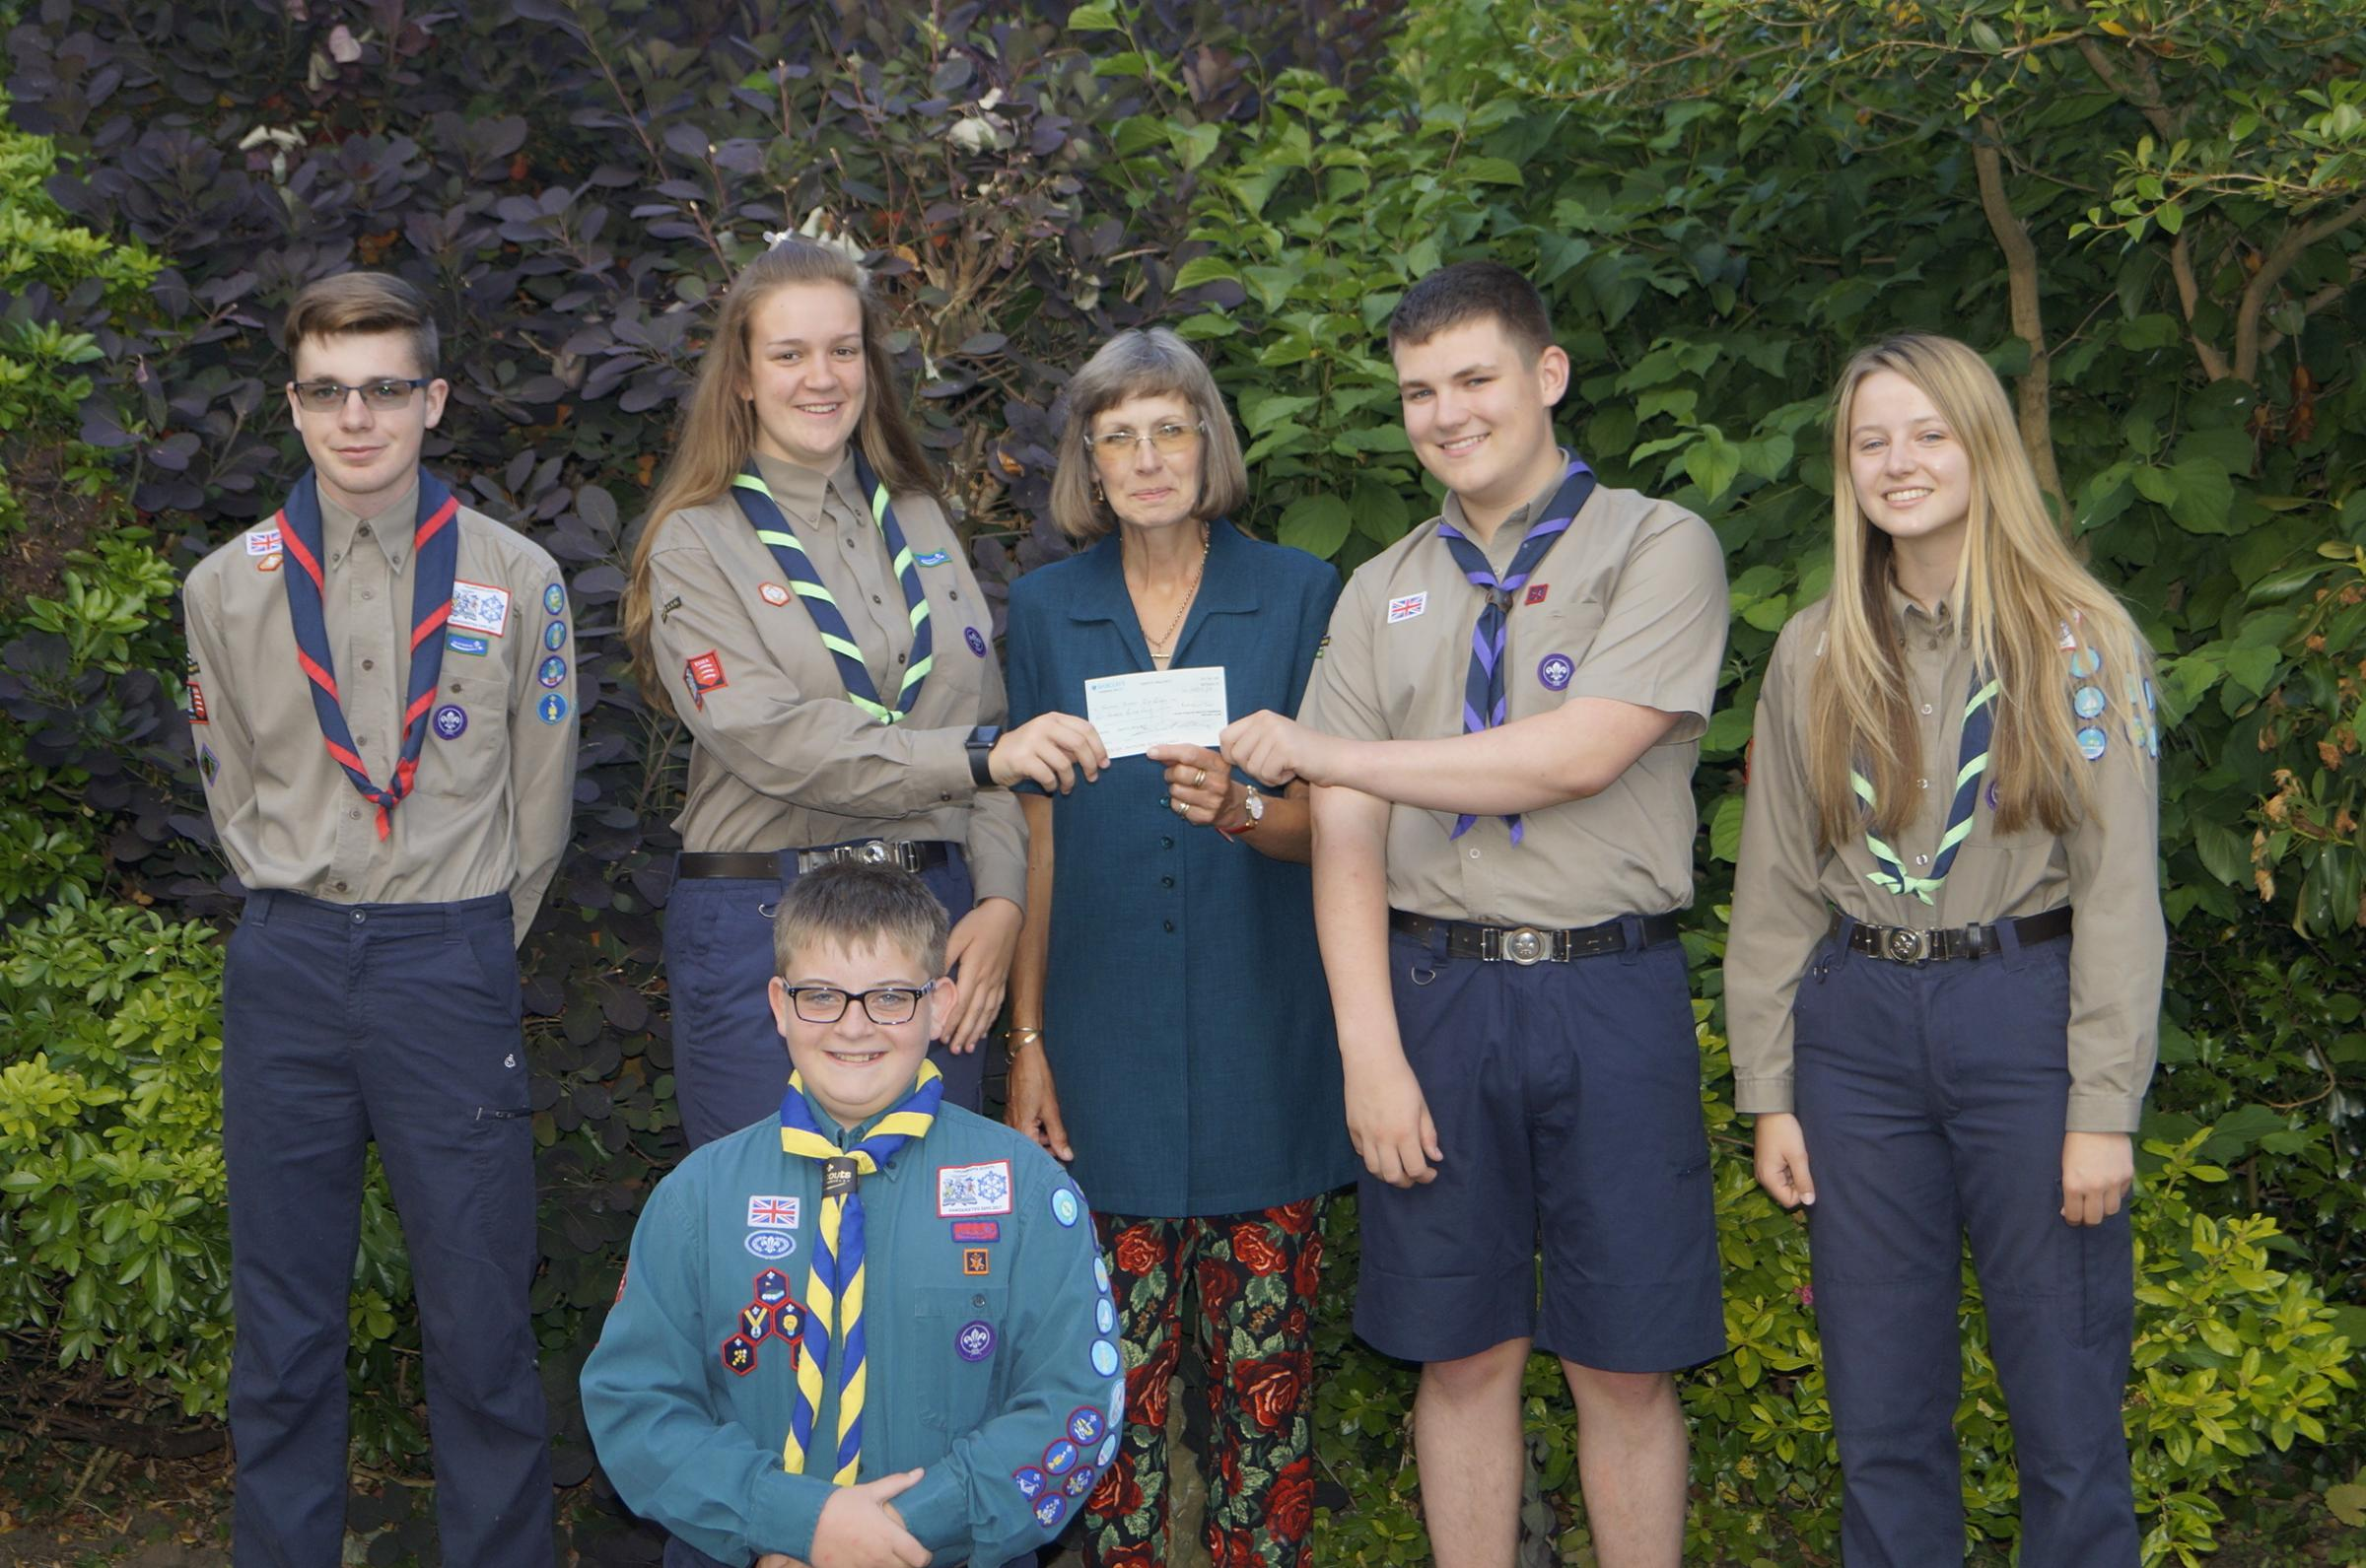 Connor Martin, Niamh Culshaw, Elaine Stevens from The Rotary Club of Grays Thurrock, Katherine Franklin, Will Ellis & Jacob Ward